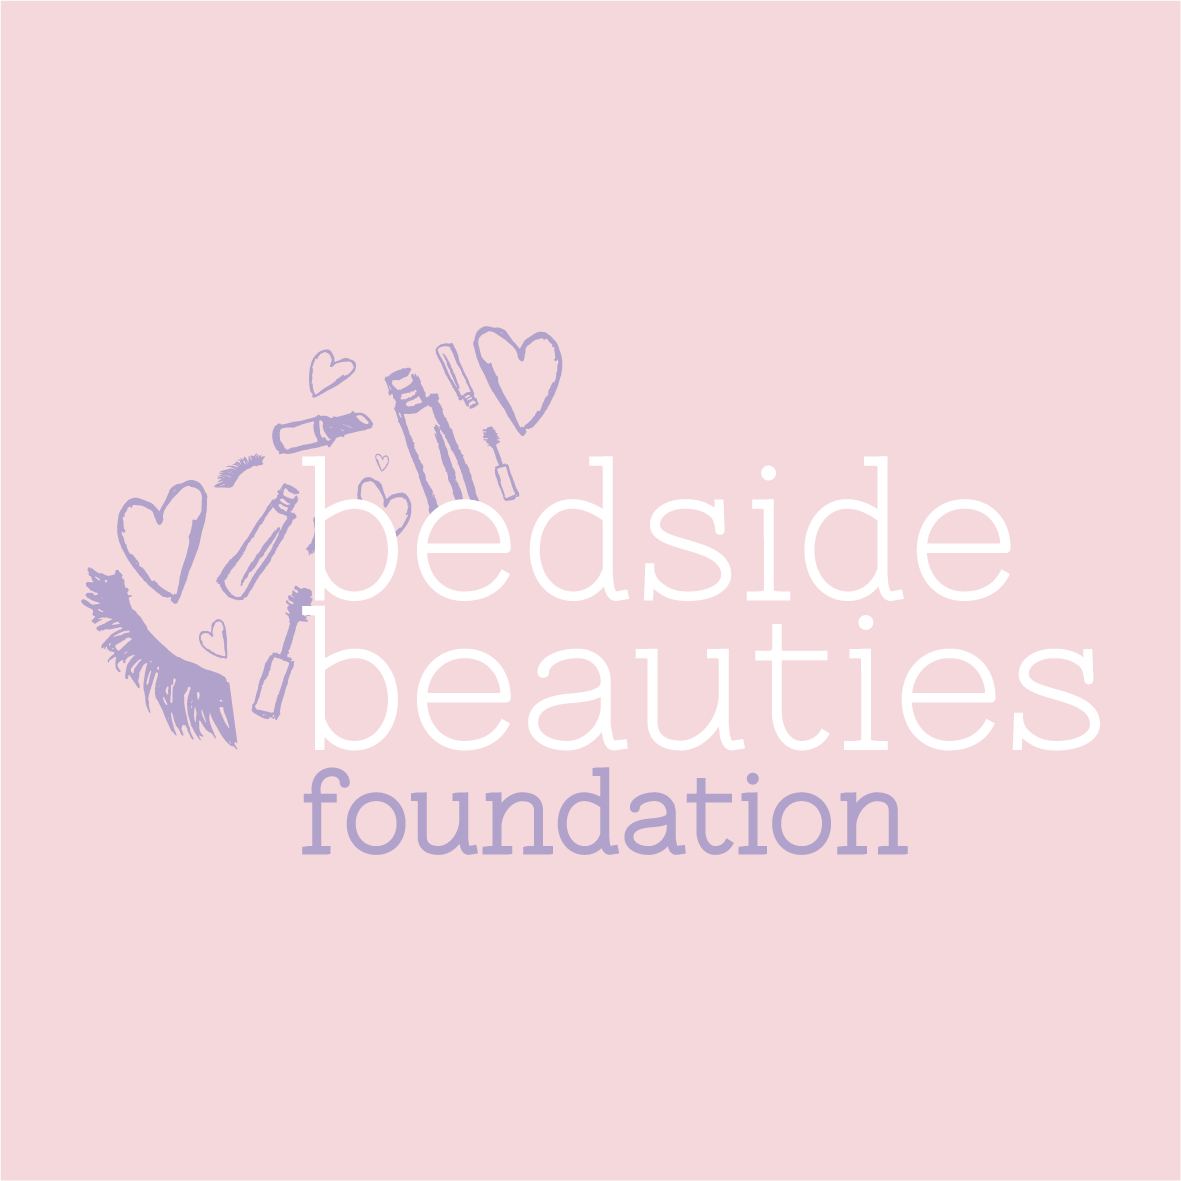 Sub logo design was created to provide beauty support services (mini makeovers, education about safer beauty) to women in the hospital undergoing cancer treatment as an initiative by Clean Beauty. - Mock up templates courtesy from graphicsfuel.com